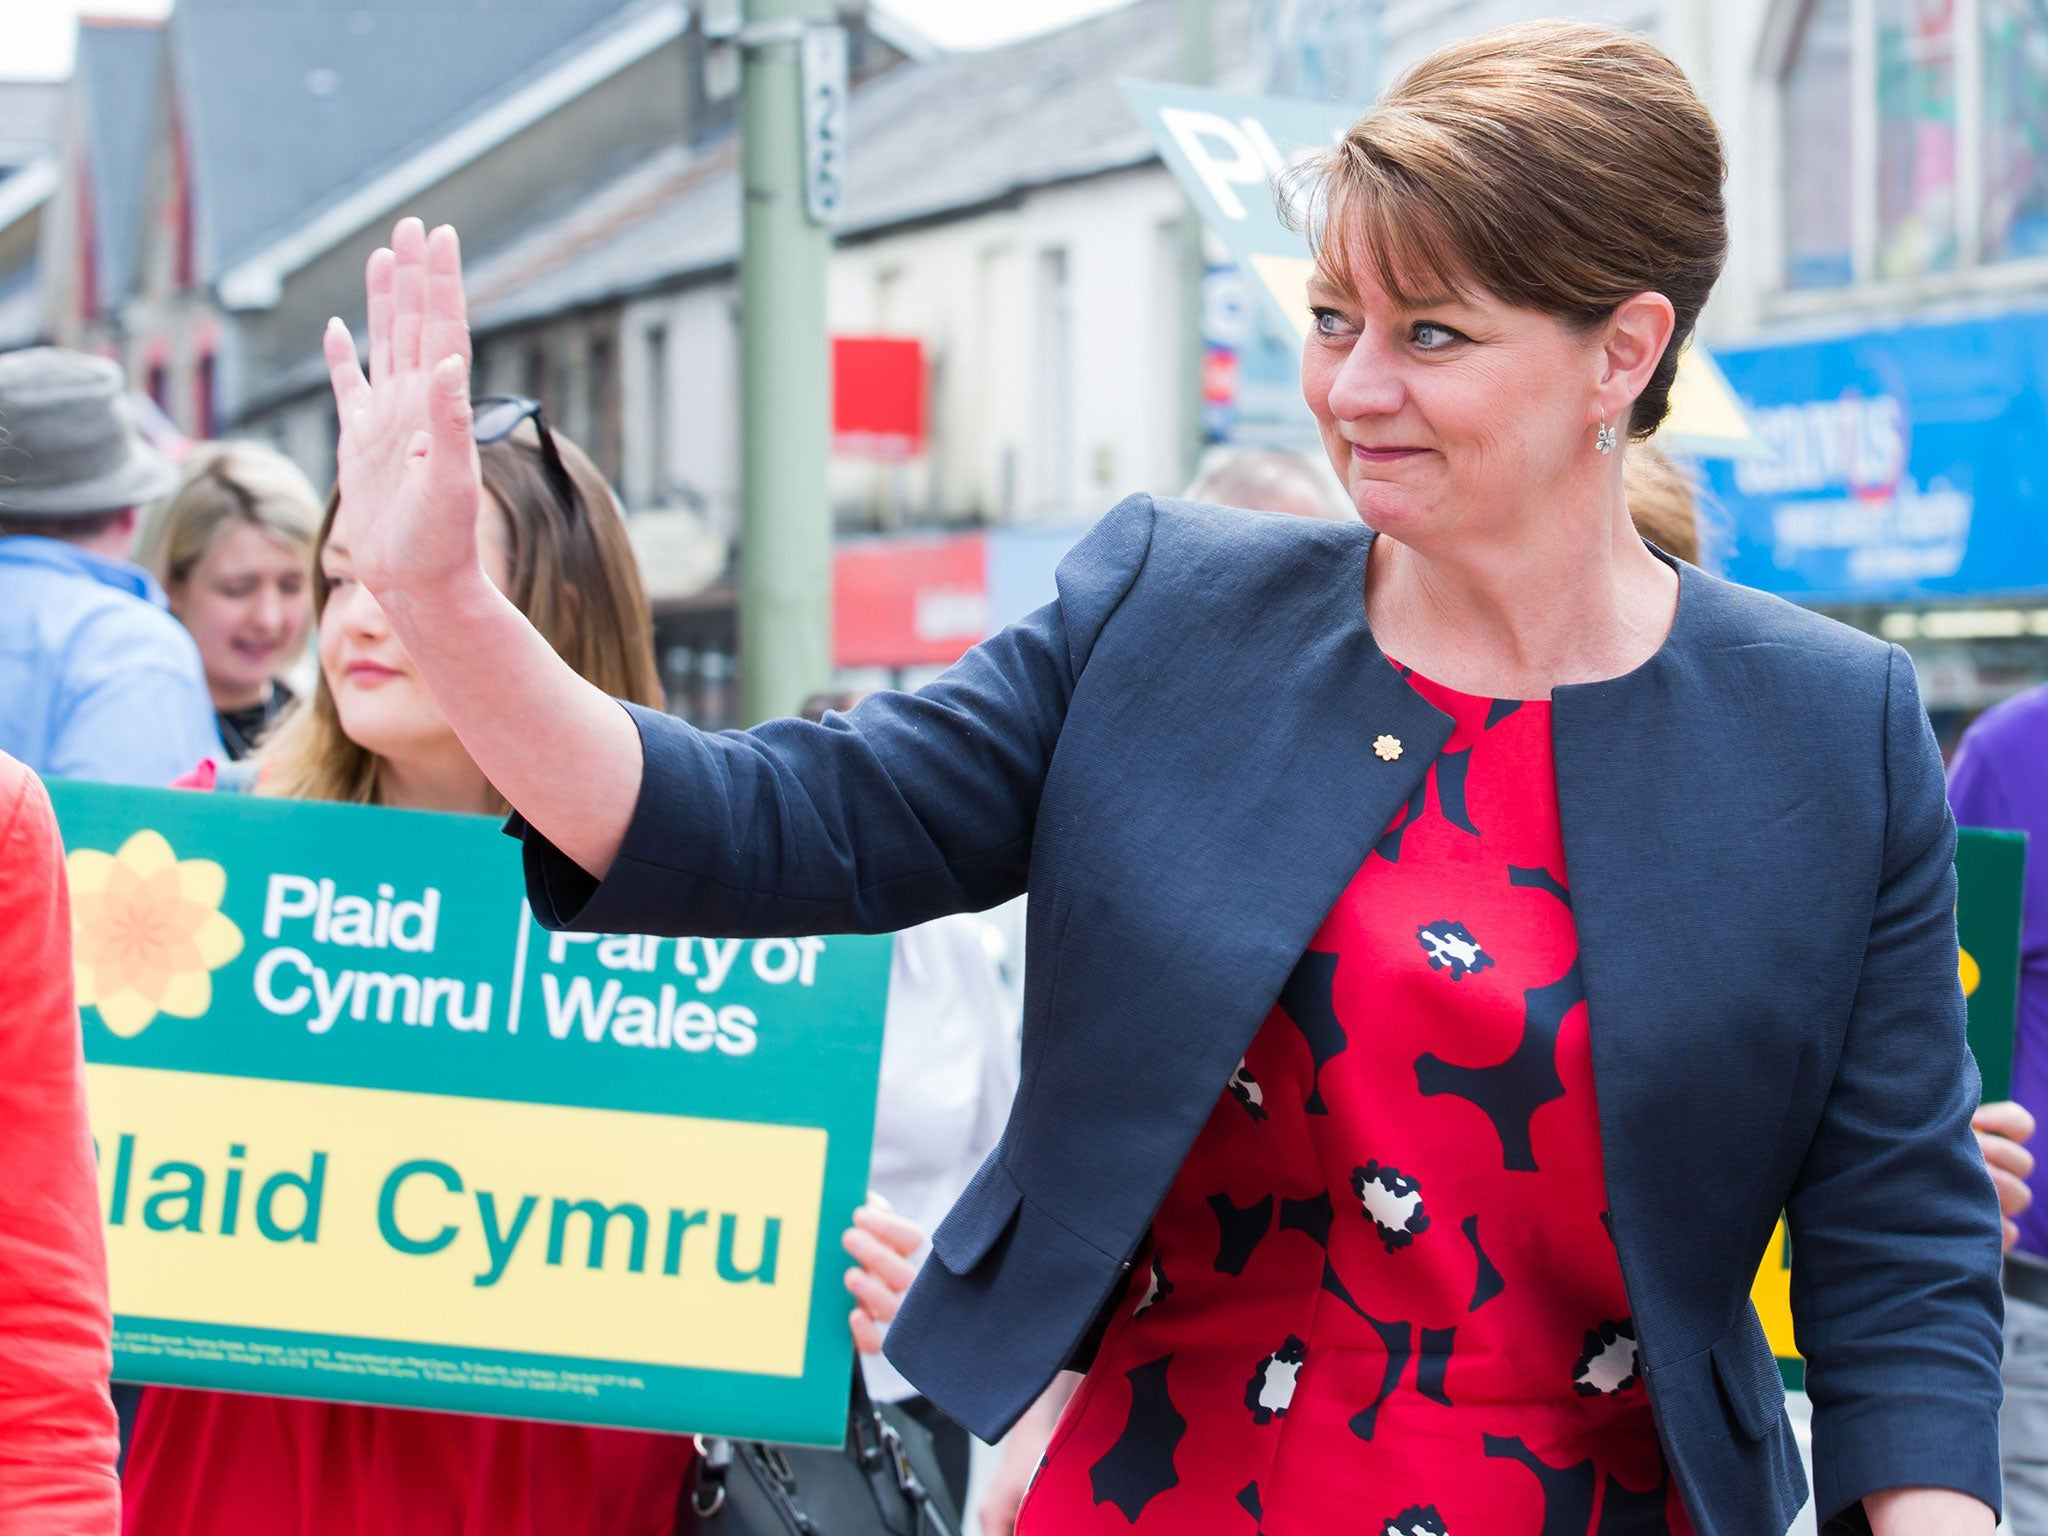 Wales could disappear into England under hard Brexit, Welsh nationalist leader warns